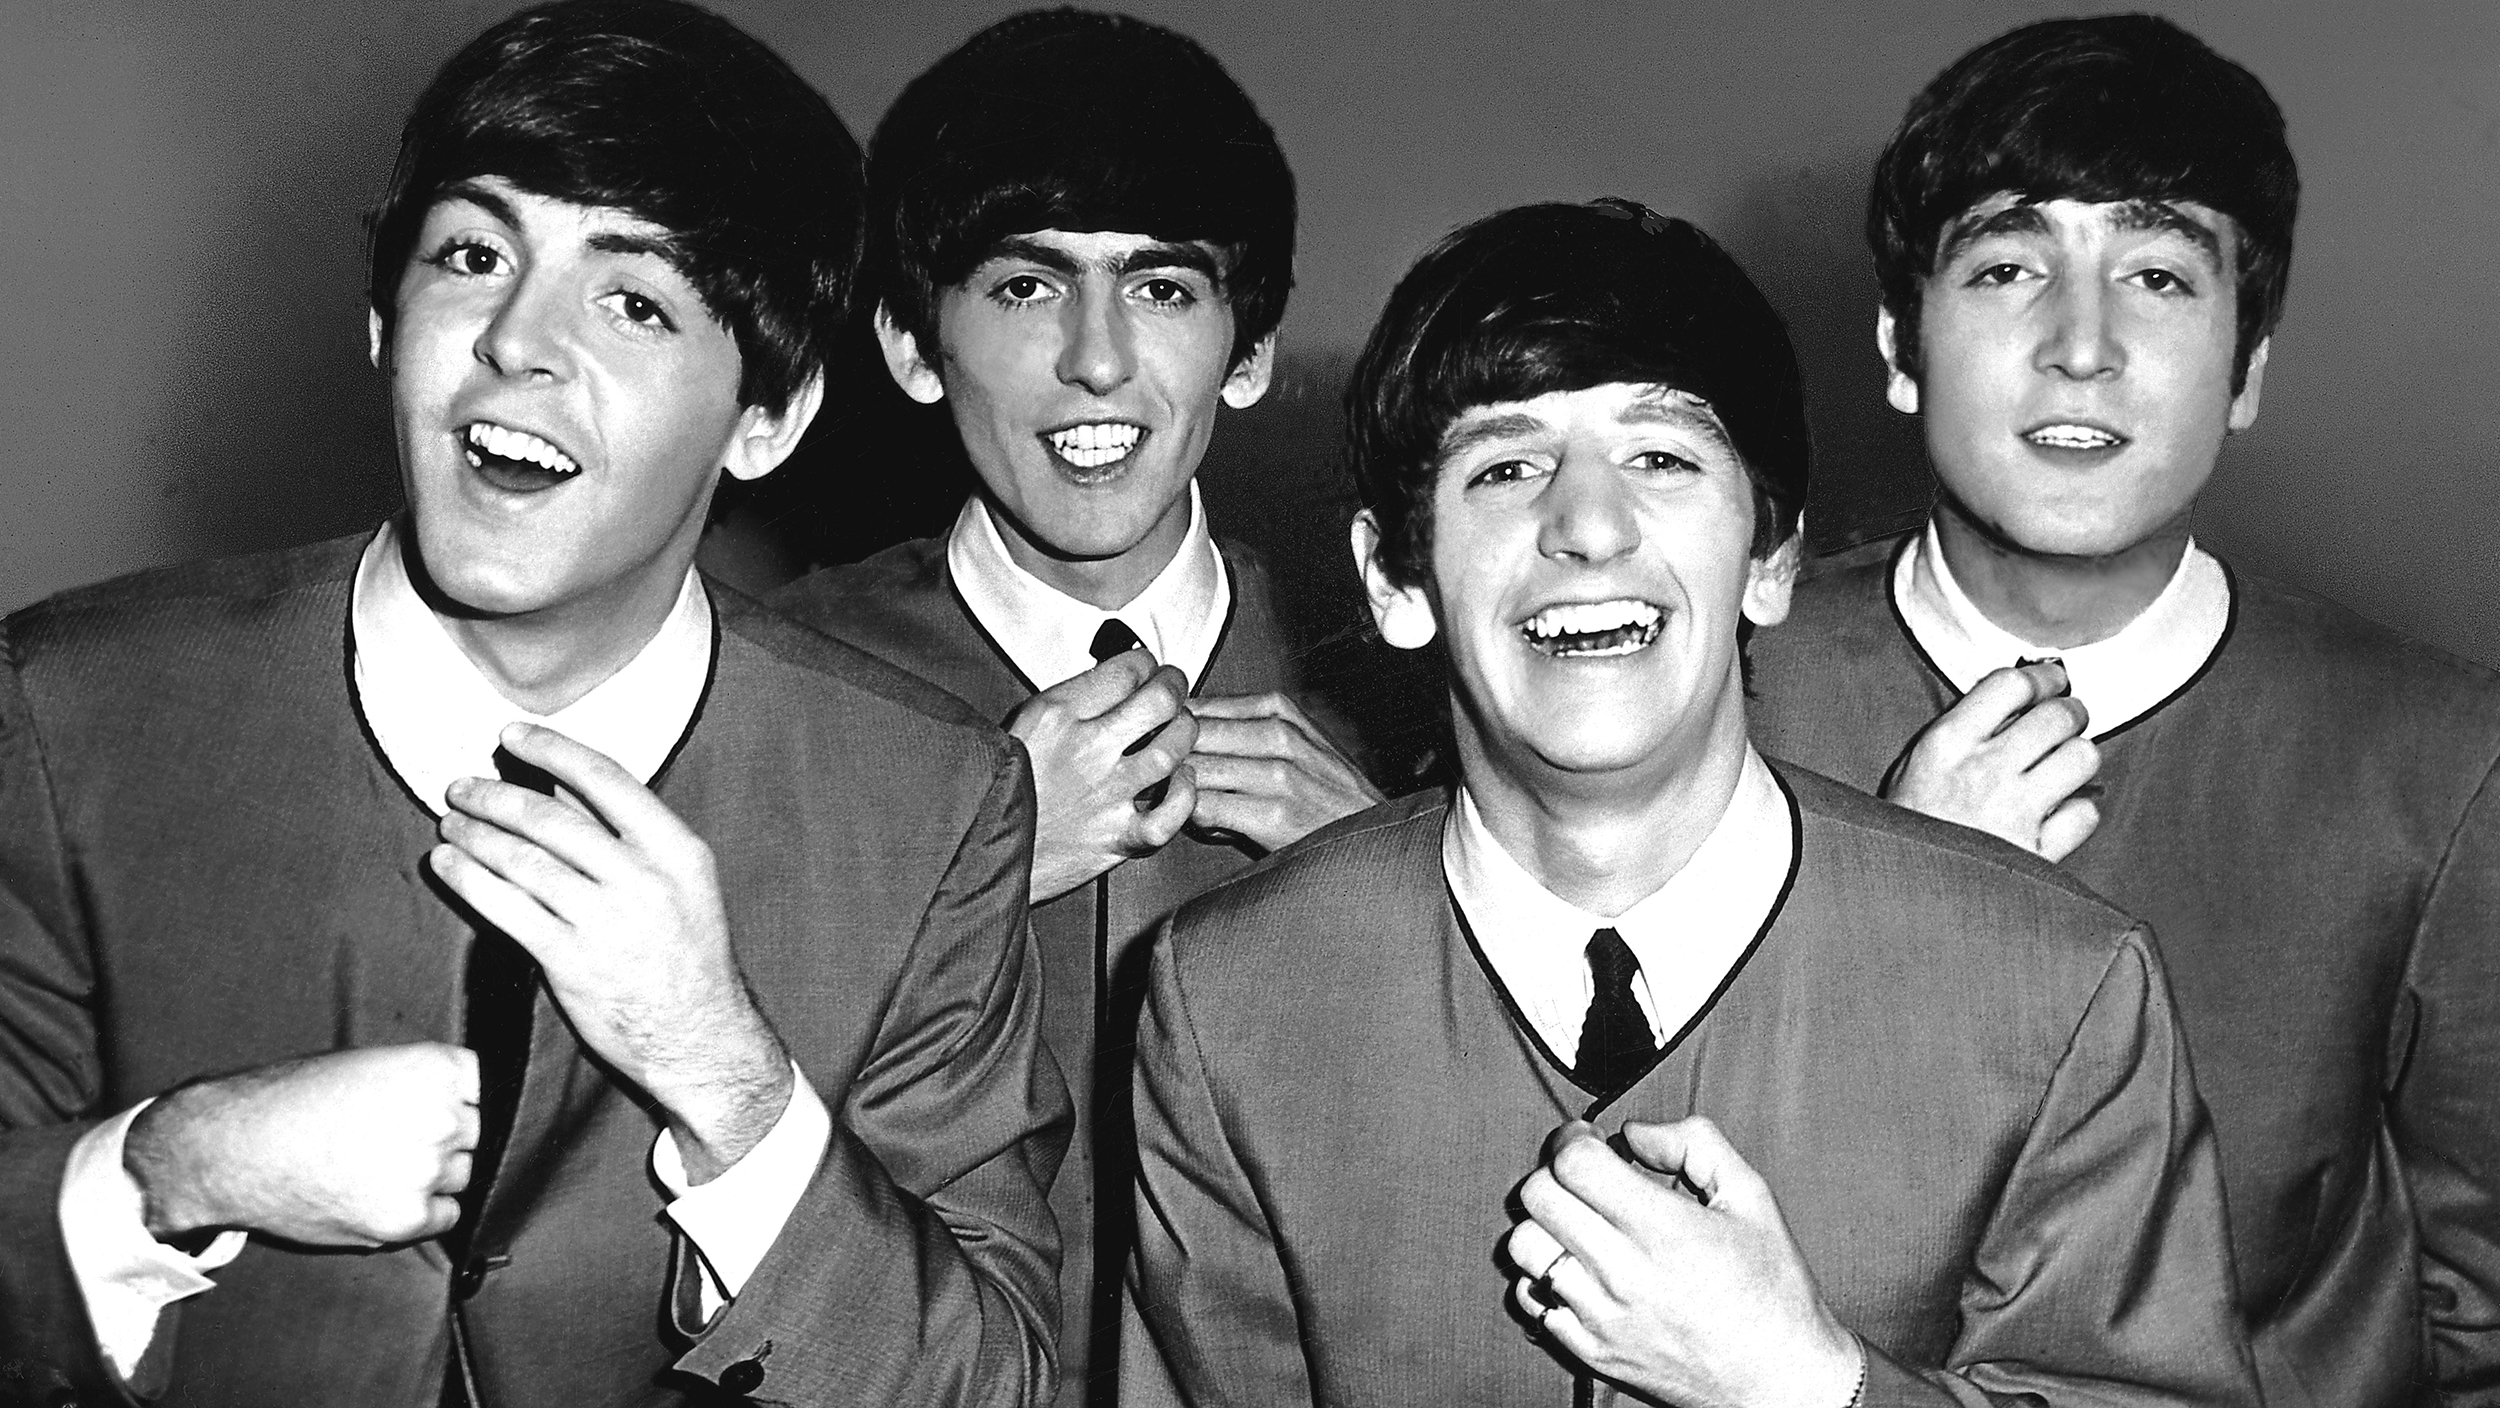 Beatles, primo contratto messo all'asta per 150mila dollari